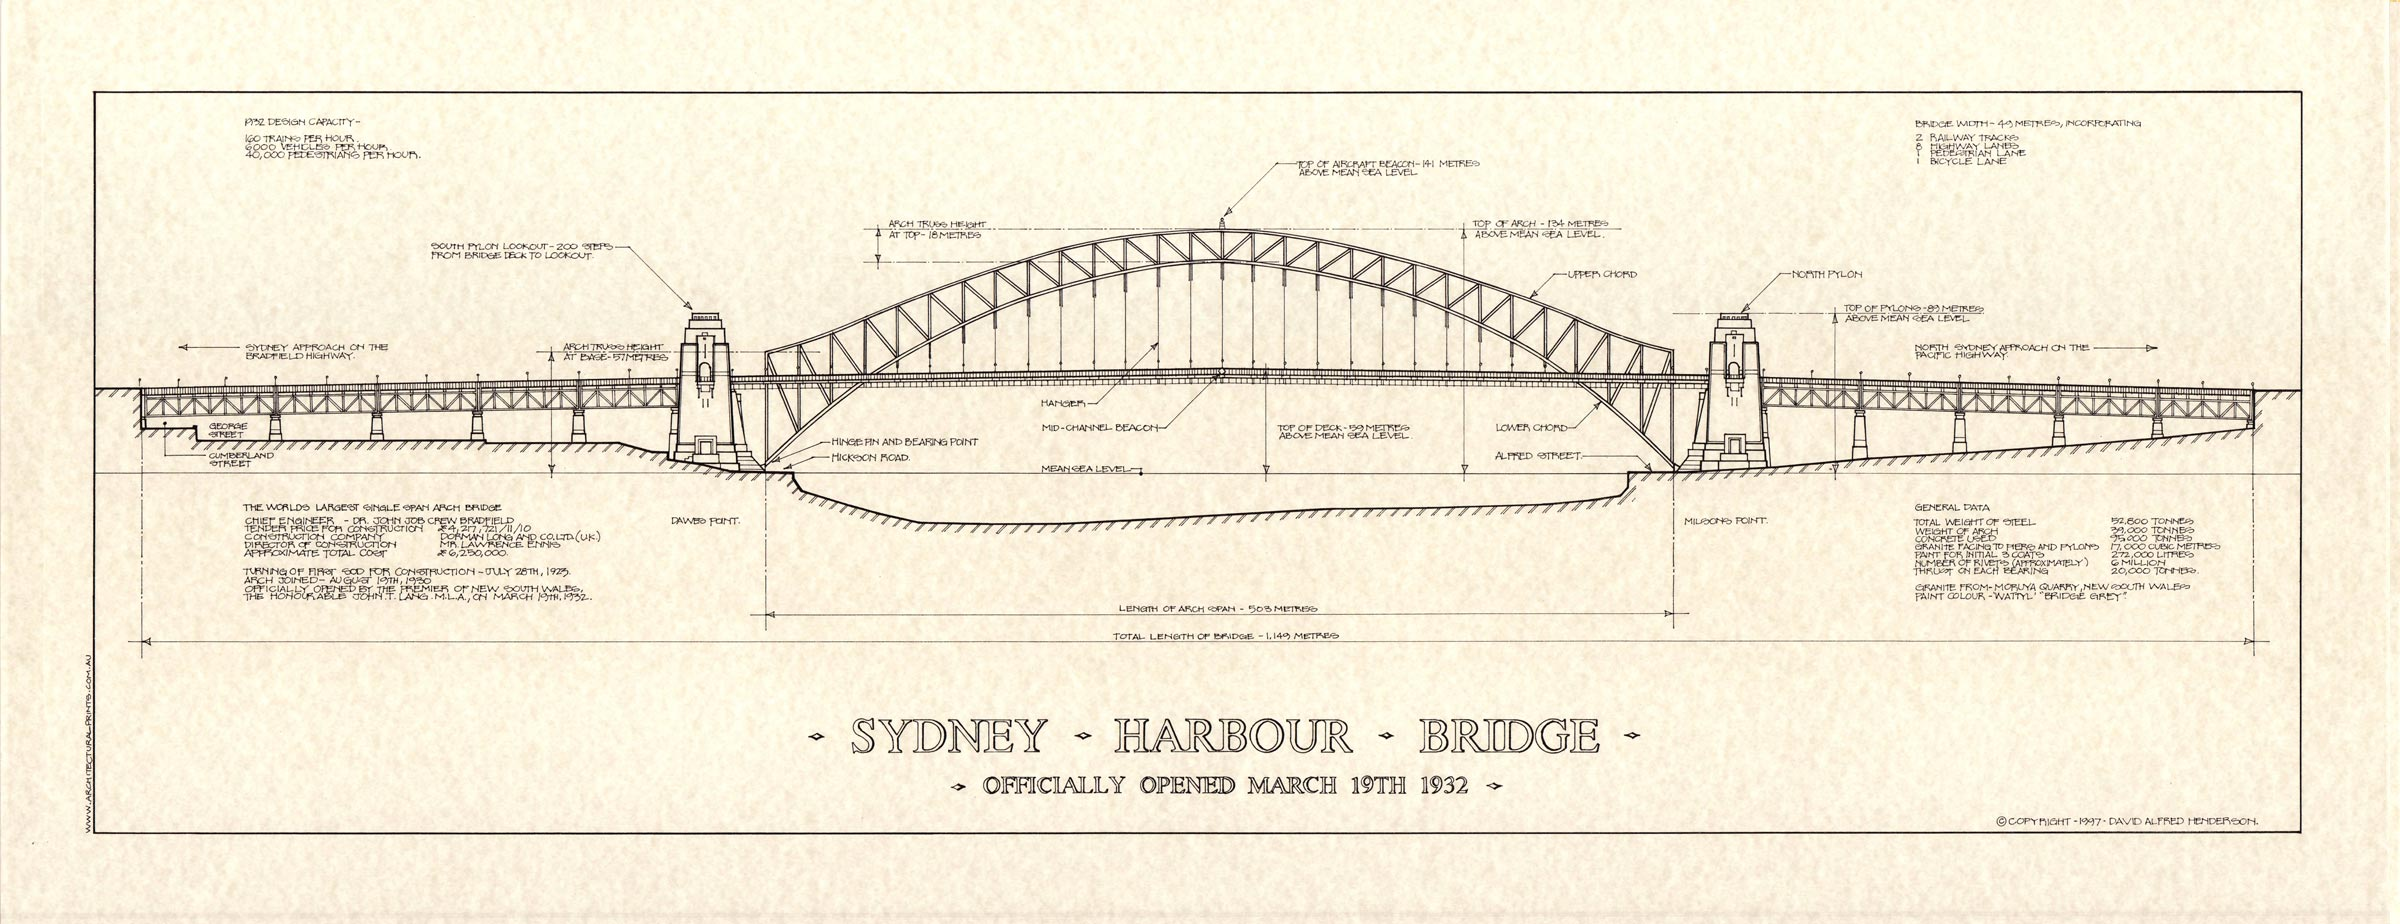 Sydney Harbour Bridge Print Architectural